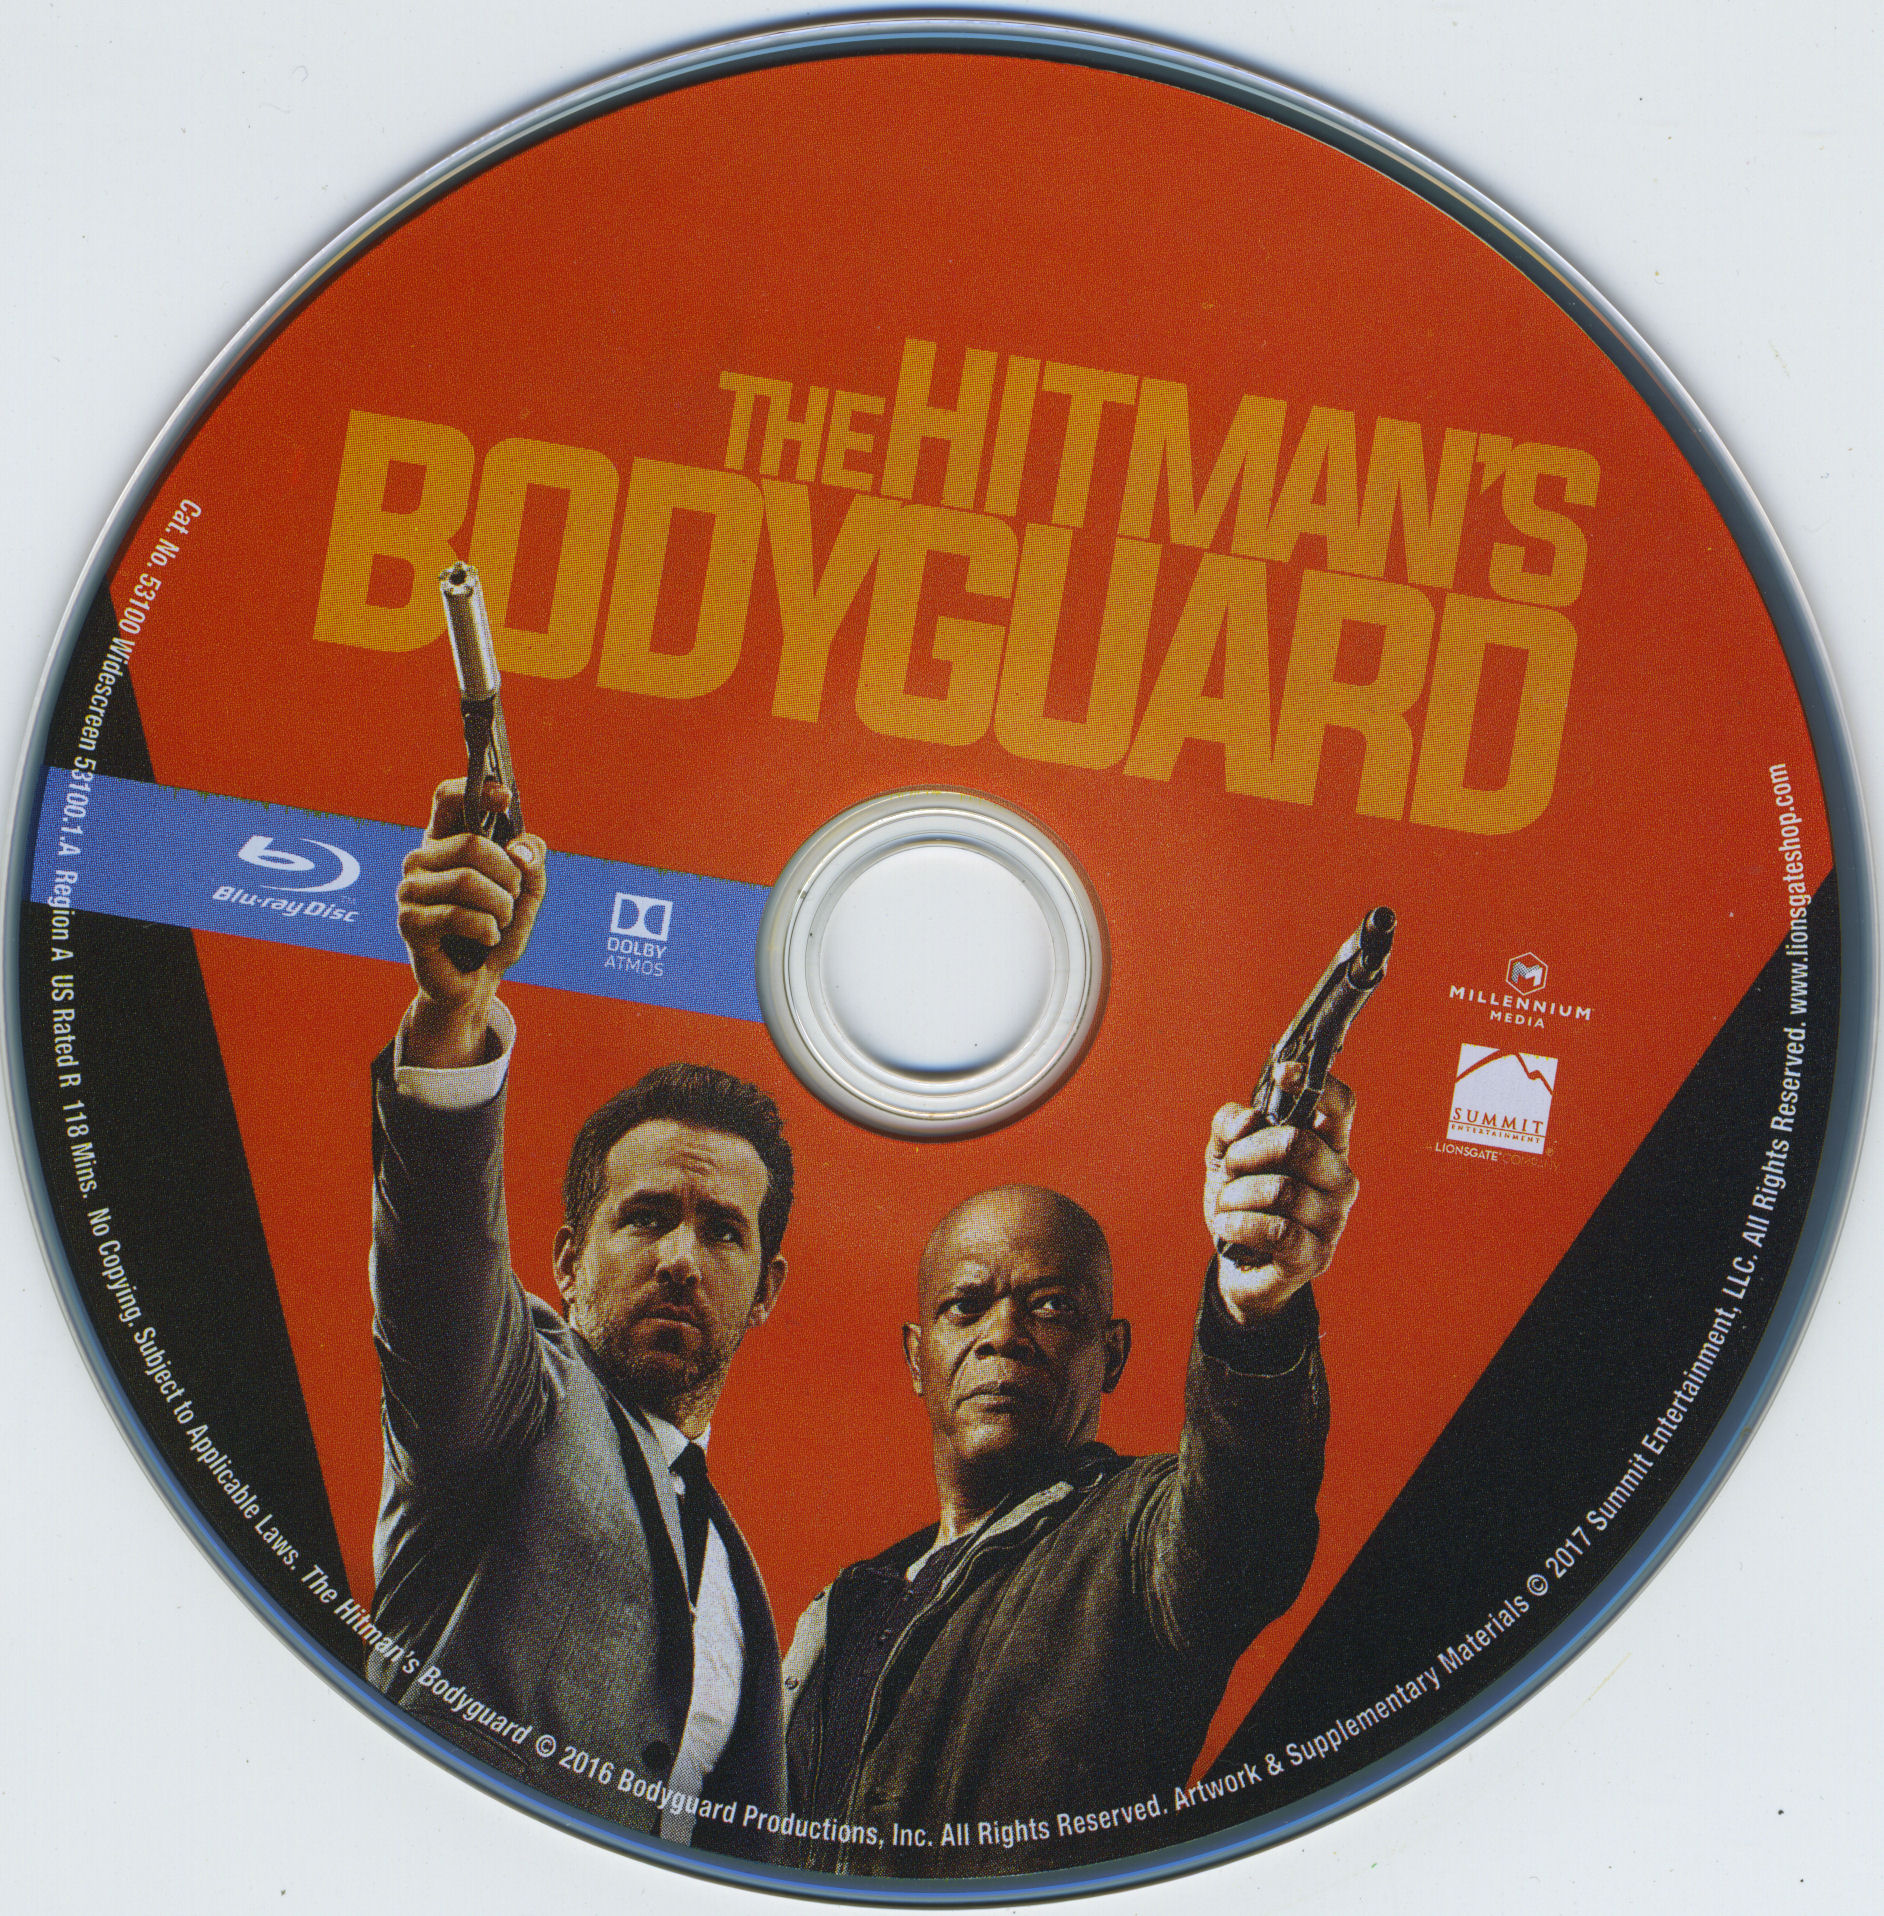 Hitmans Bodyguard 2017 Cd Blu Ray Covers Cover Century Over 500 000 Album Art Covers For Free